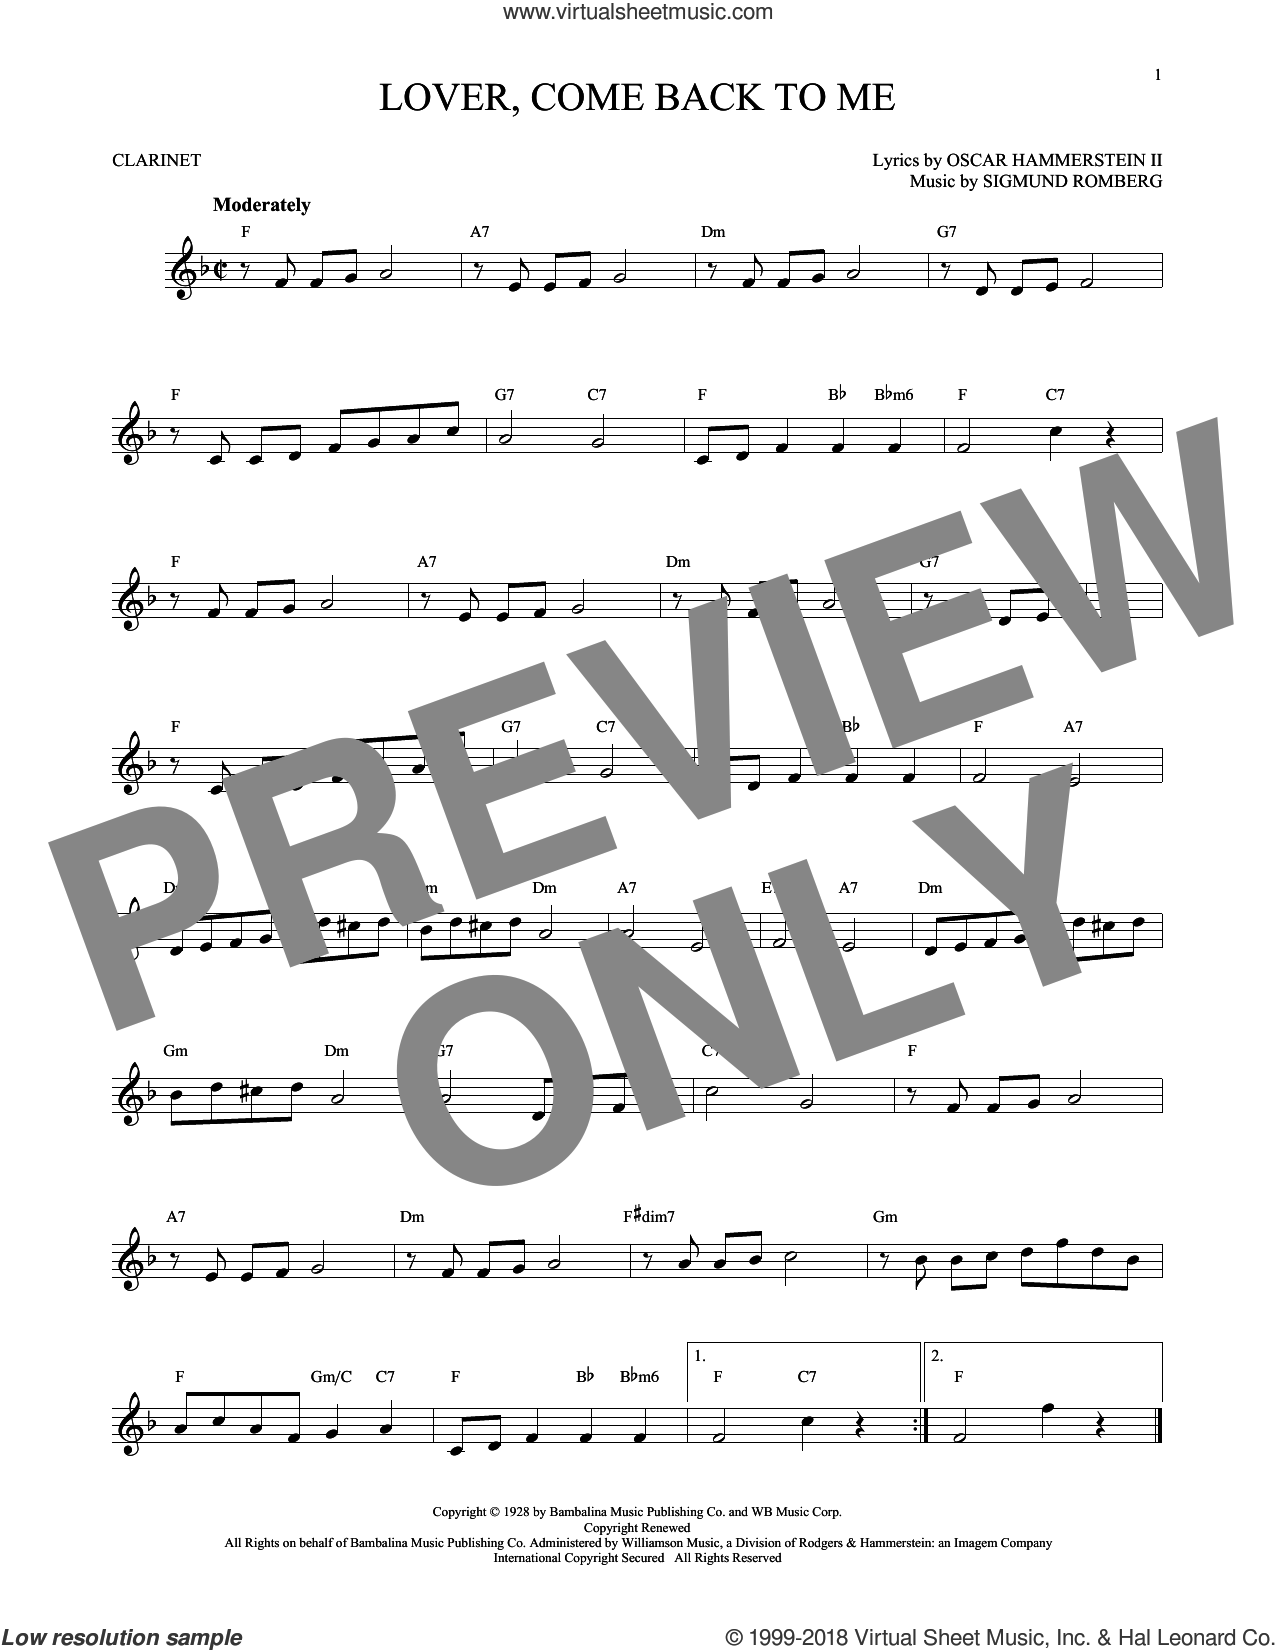 Lover, Come Back To Me sheet music for clarinet solo by Oscar II Hammerstein and Sigmund Romberg, intermediate skill level